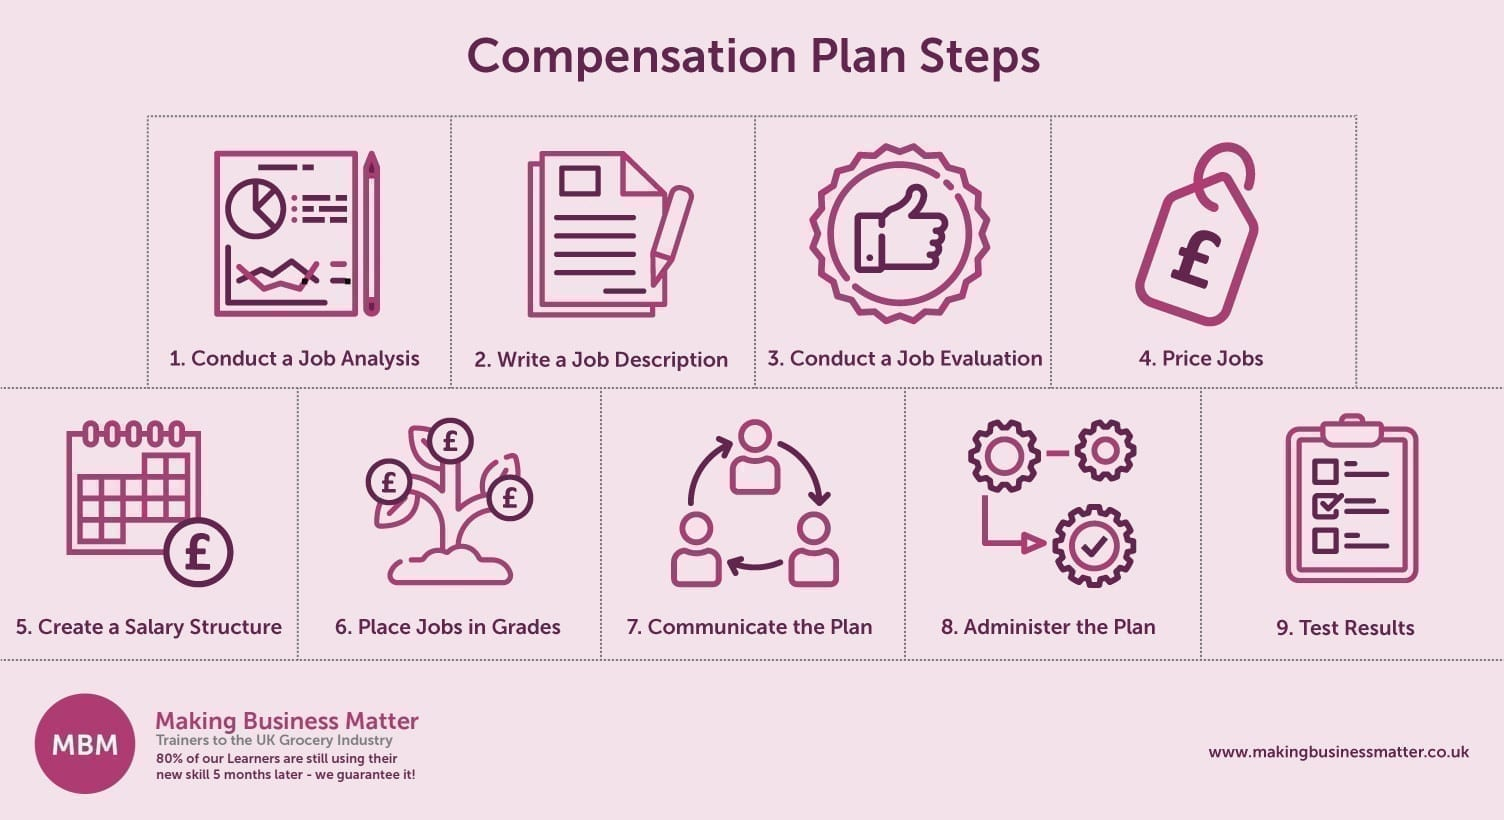 Employee Compensation, Compensation Plan Steps Image